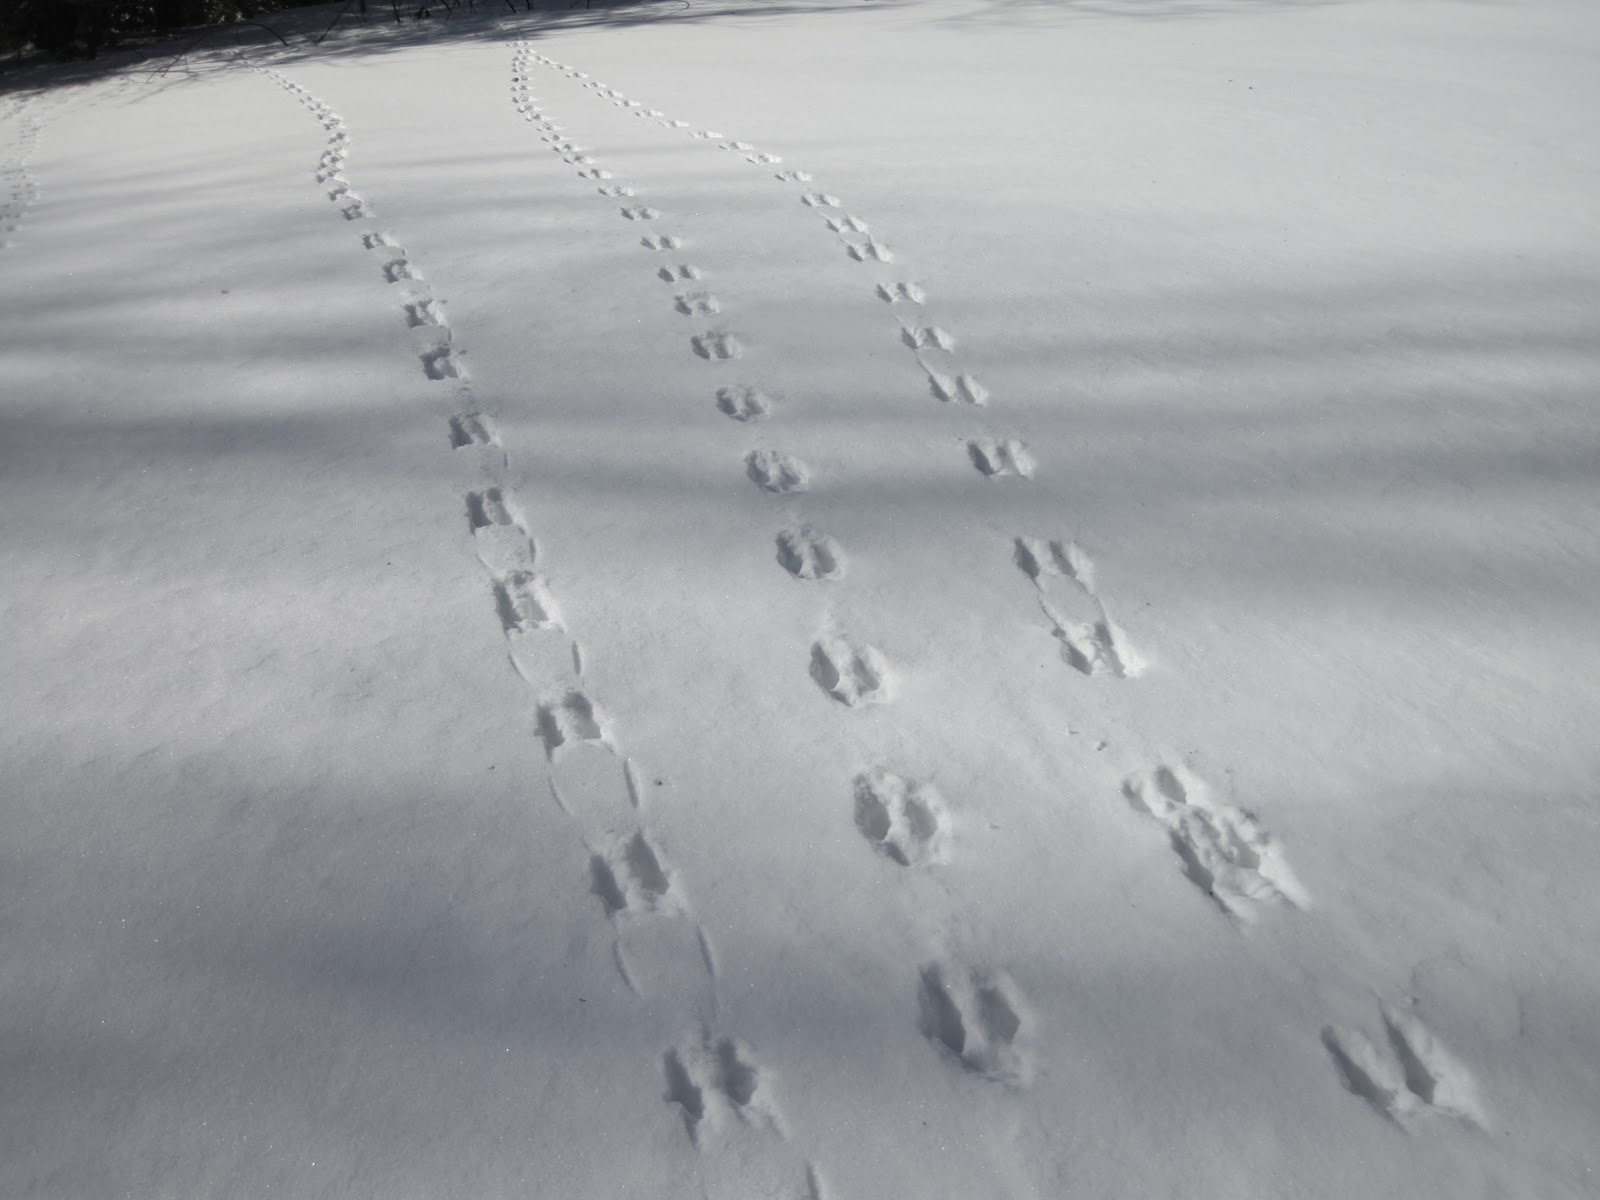 Animal tracks in sand snow nature on the edge of new york city so that is how you can identify if tracks were made by someones pet dog or a wild fox or coyote publicscrutiny Choice Image